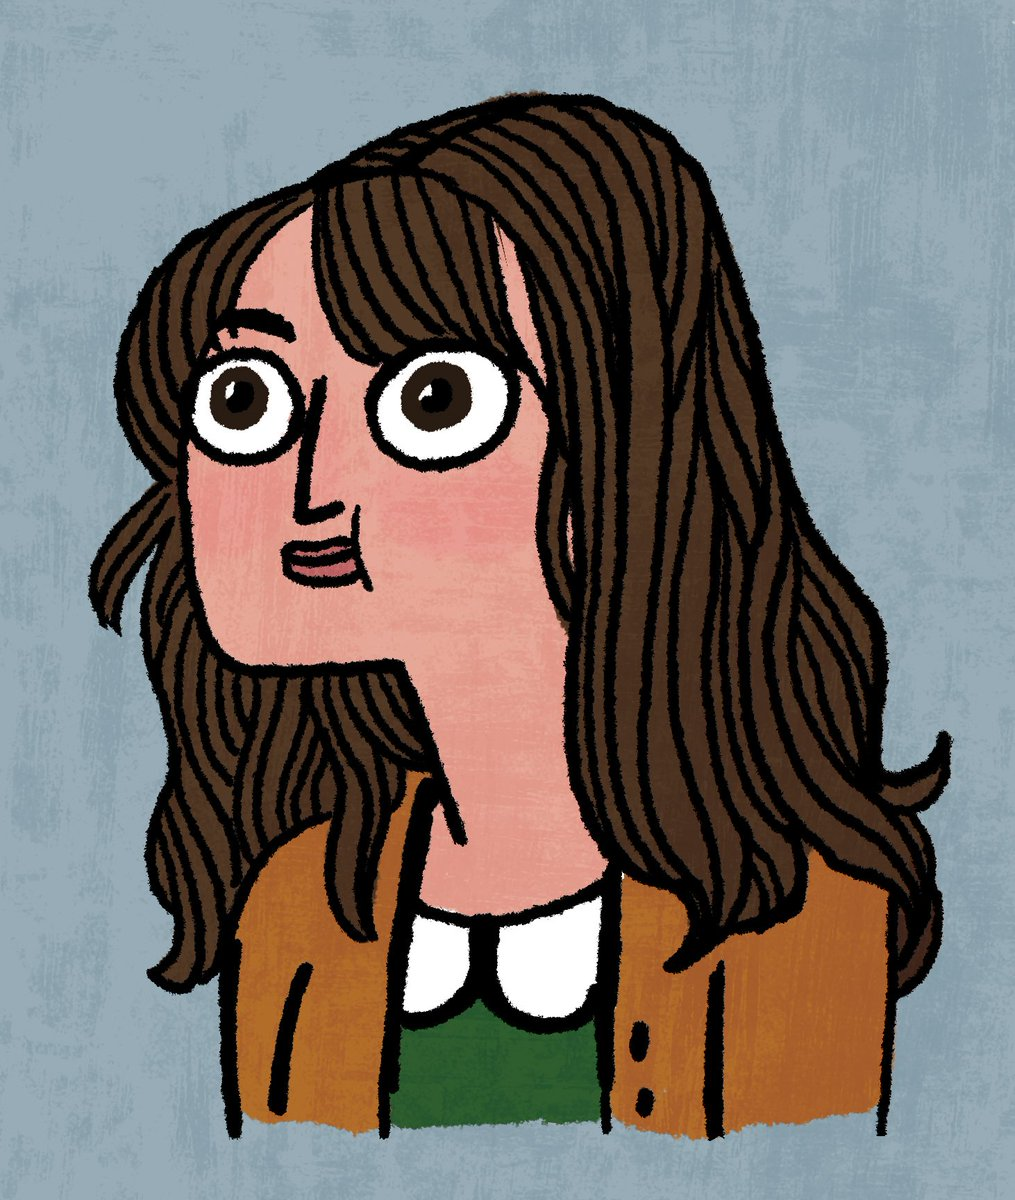 Check out this epic @ComicsJournal interview with @beatonna, conducted by @cmautner: https://t.co/Rii3qpsiqG https://t.co/AZKq6HWSuL